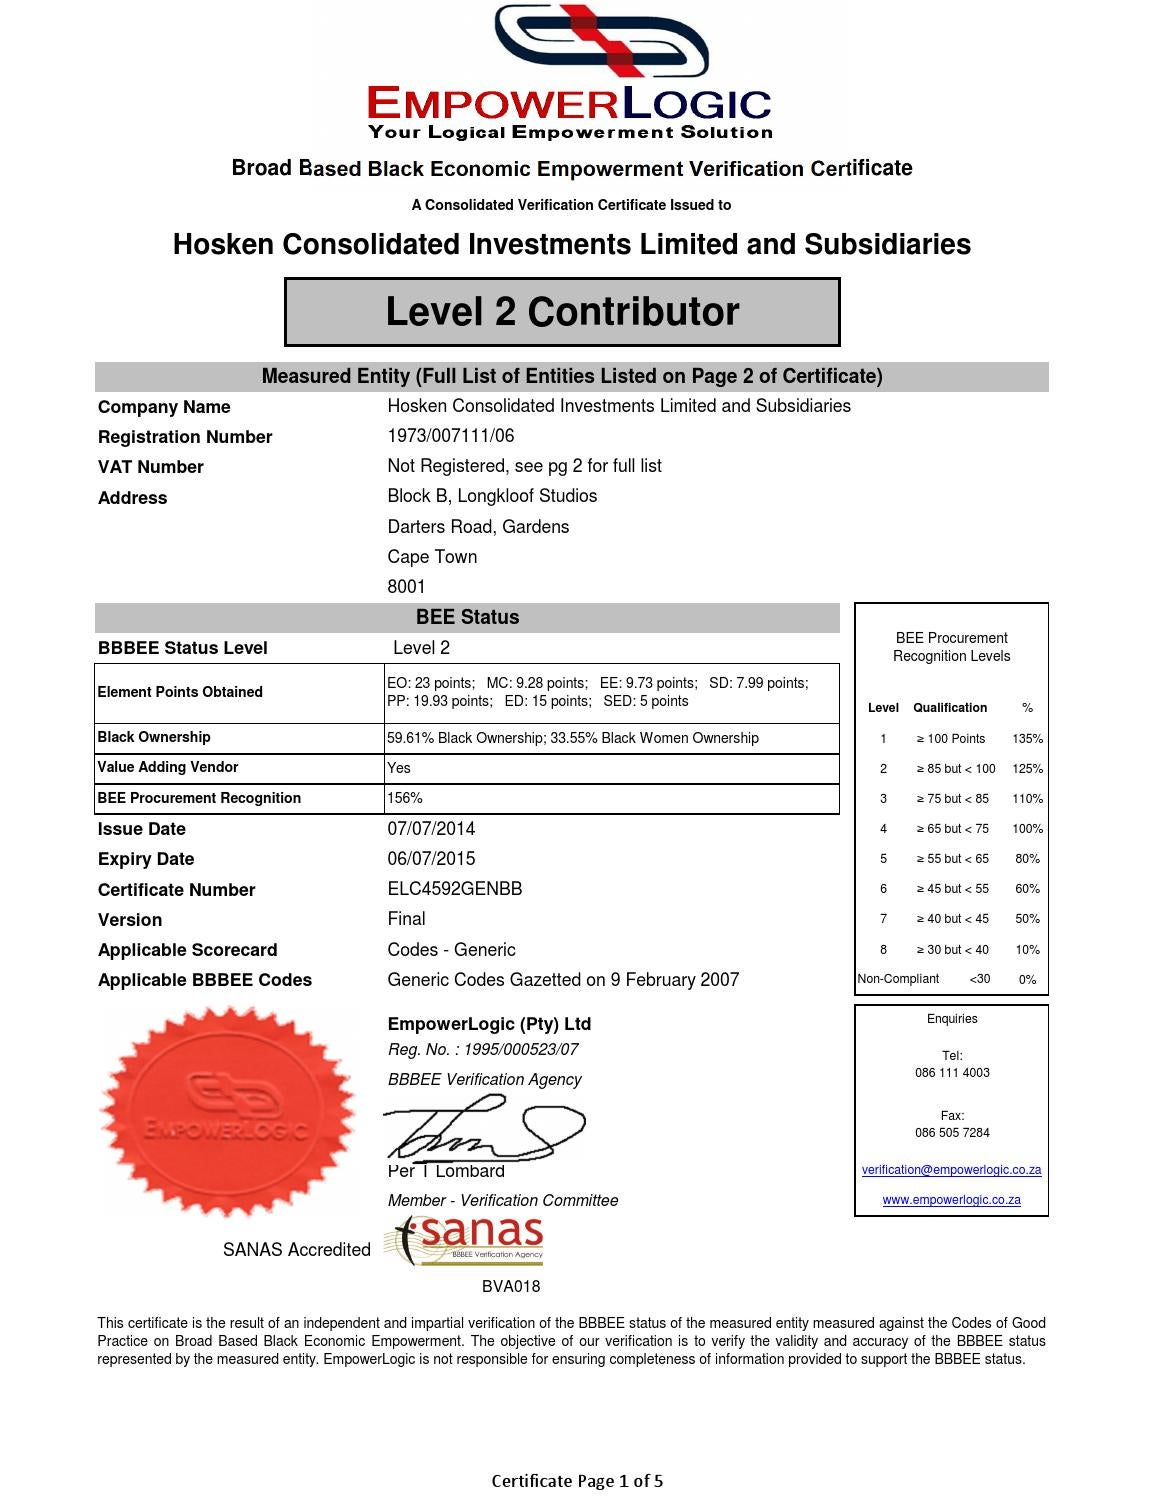 hosken consolidated investments bee certificate